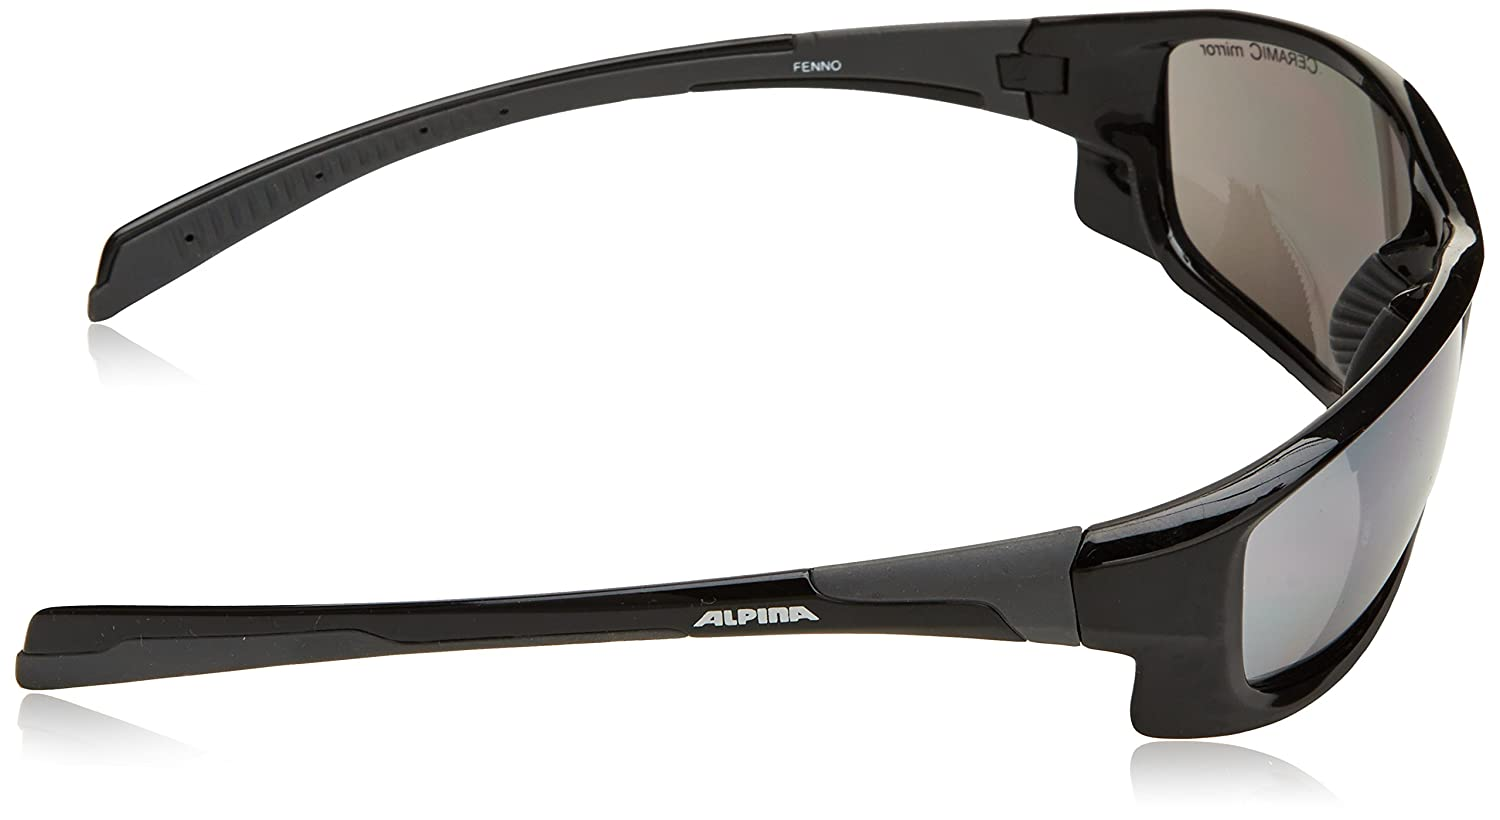 Alpina Sonnenbrille Amition FENNO, black-grey, A8529331